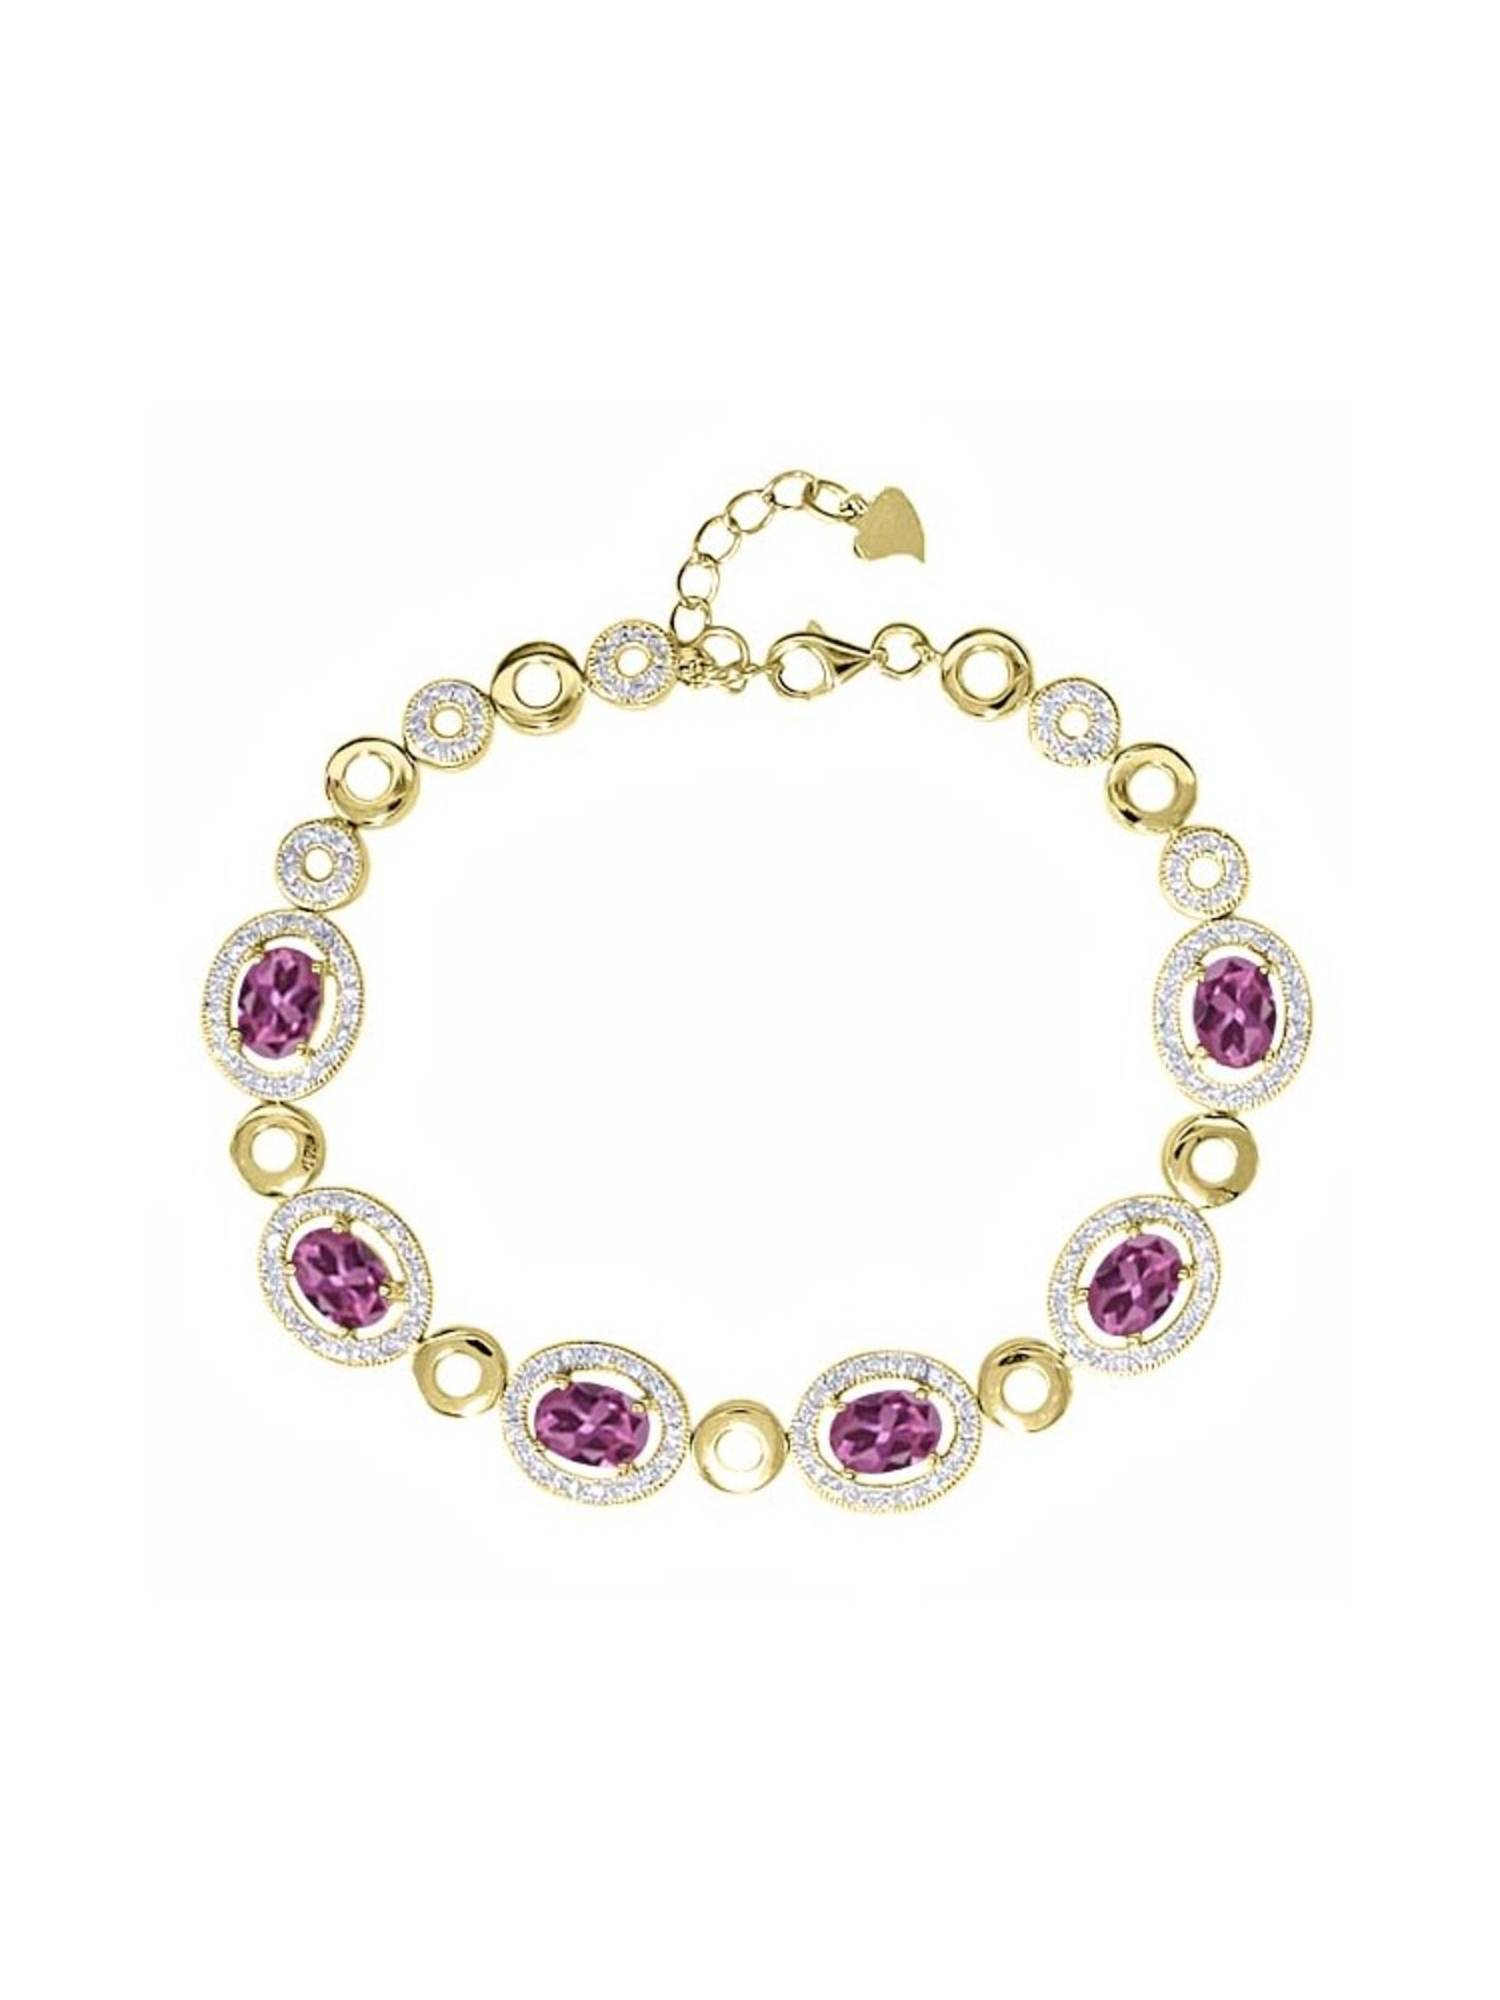 7.02 Ct Oval Pink Tourmaline 18K Yellow Gold Plated Silver Bracelet by